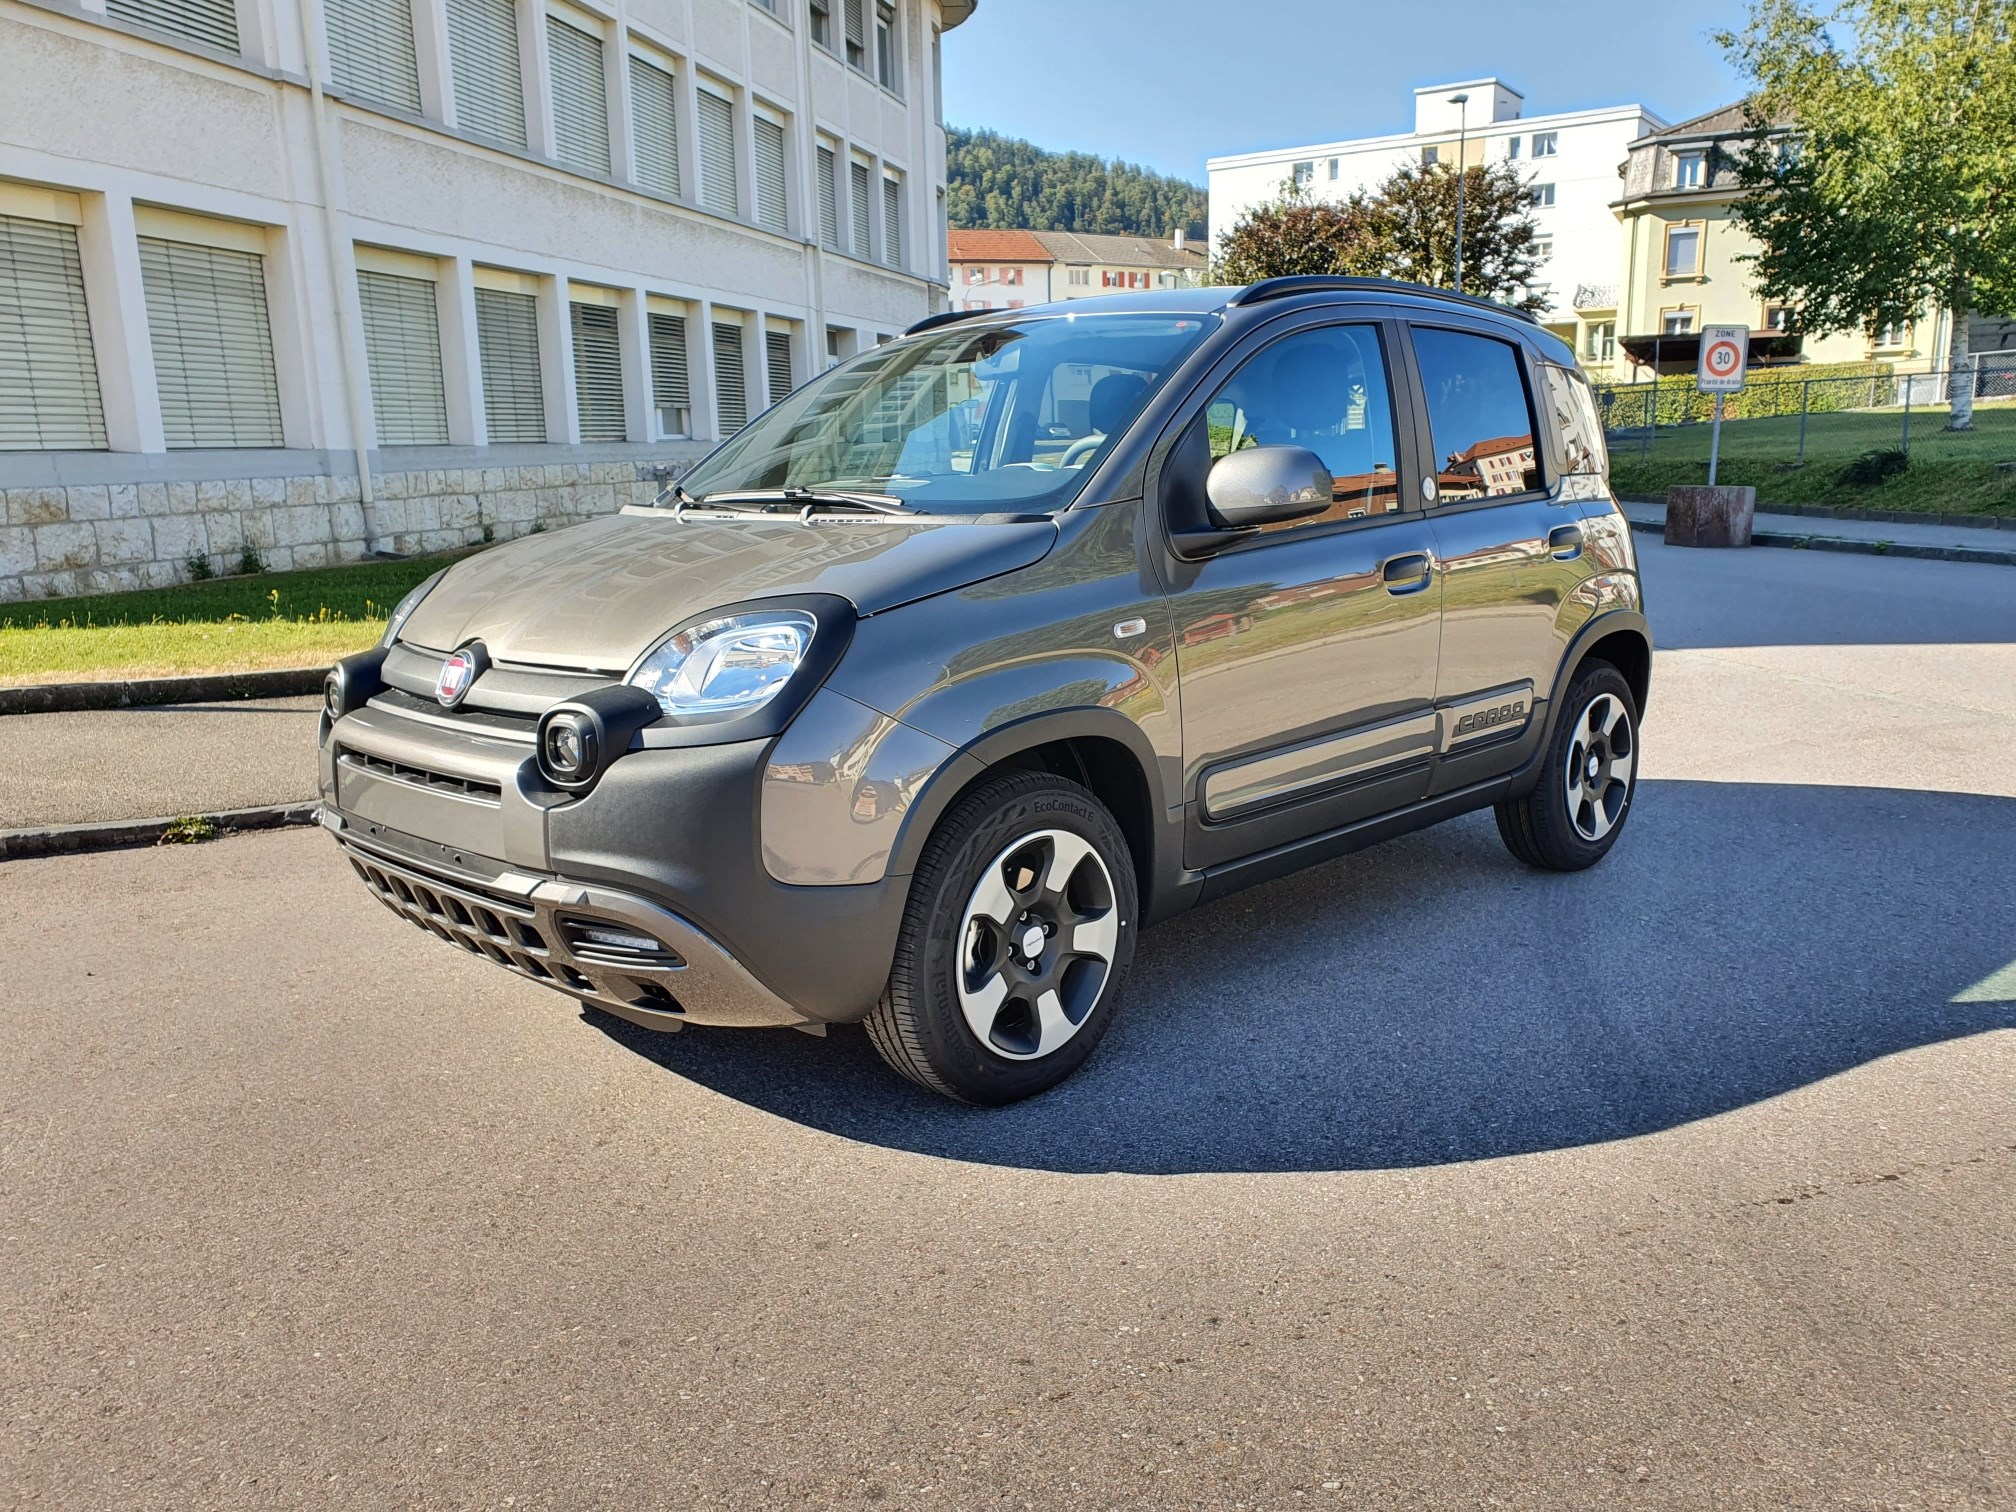 saloon Fiat Panda 1.0 MHEV Launch Edition